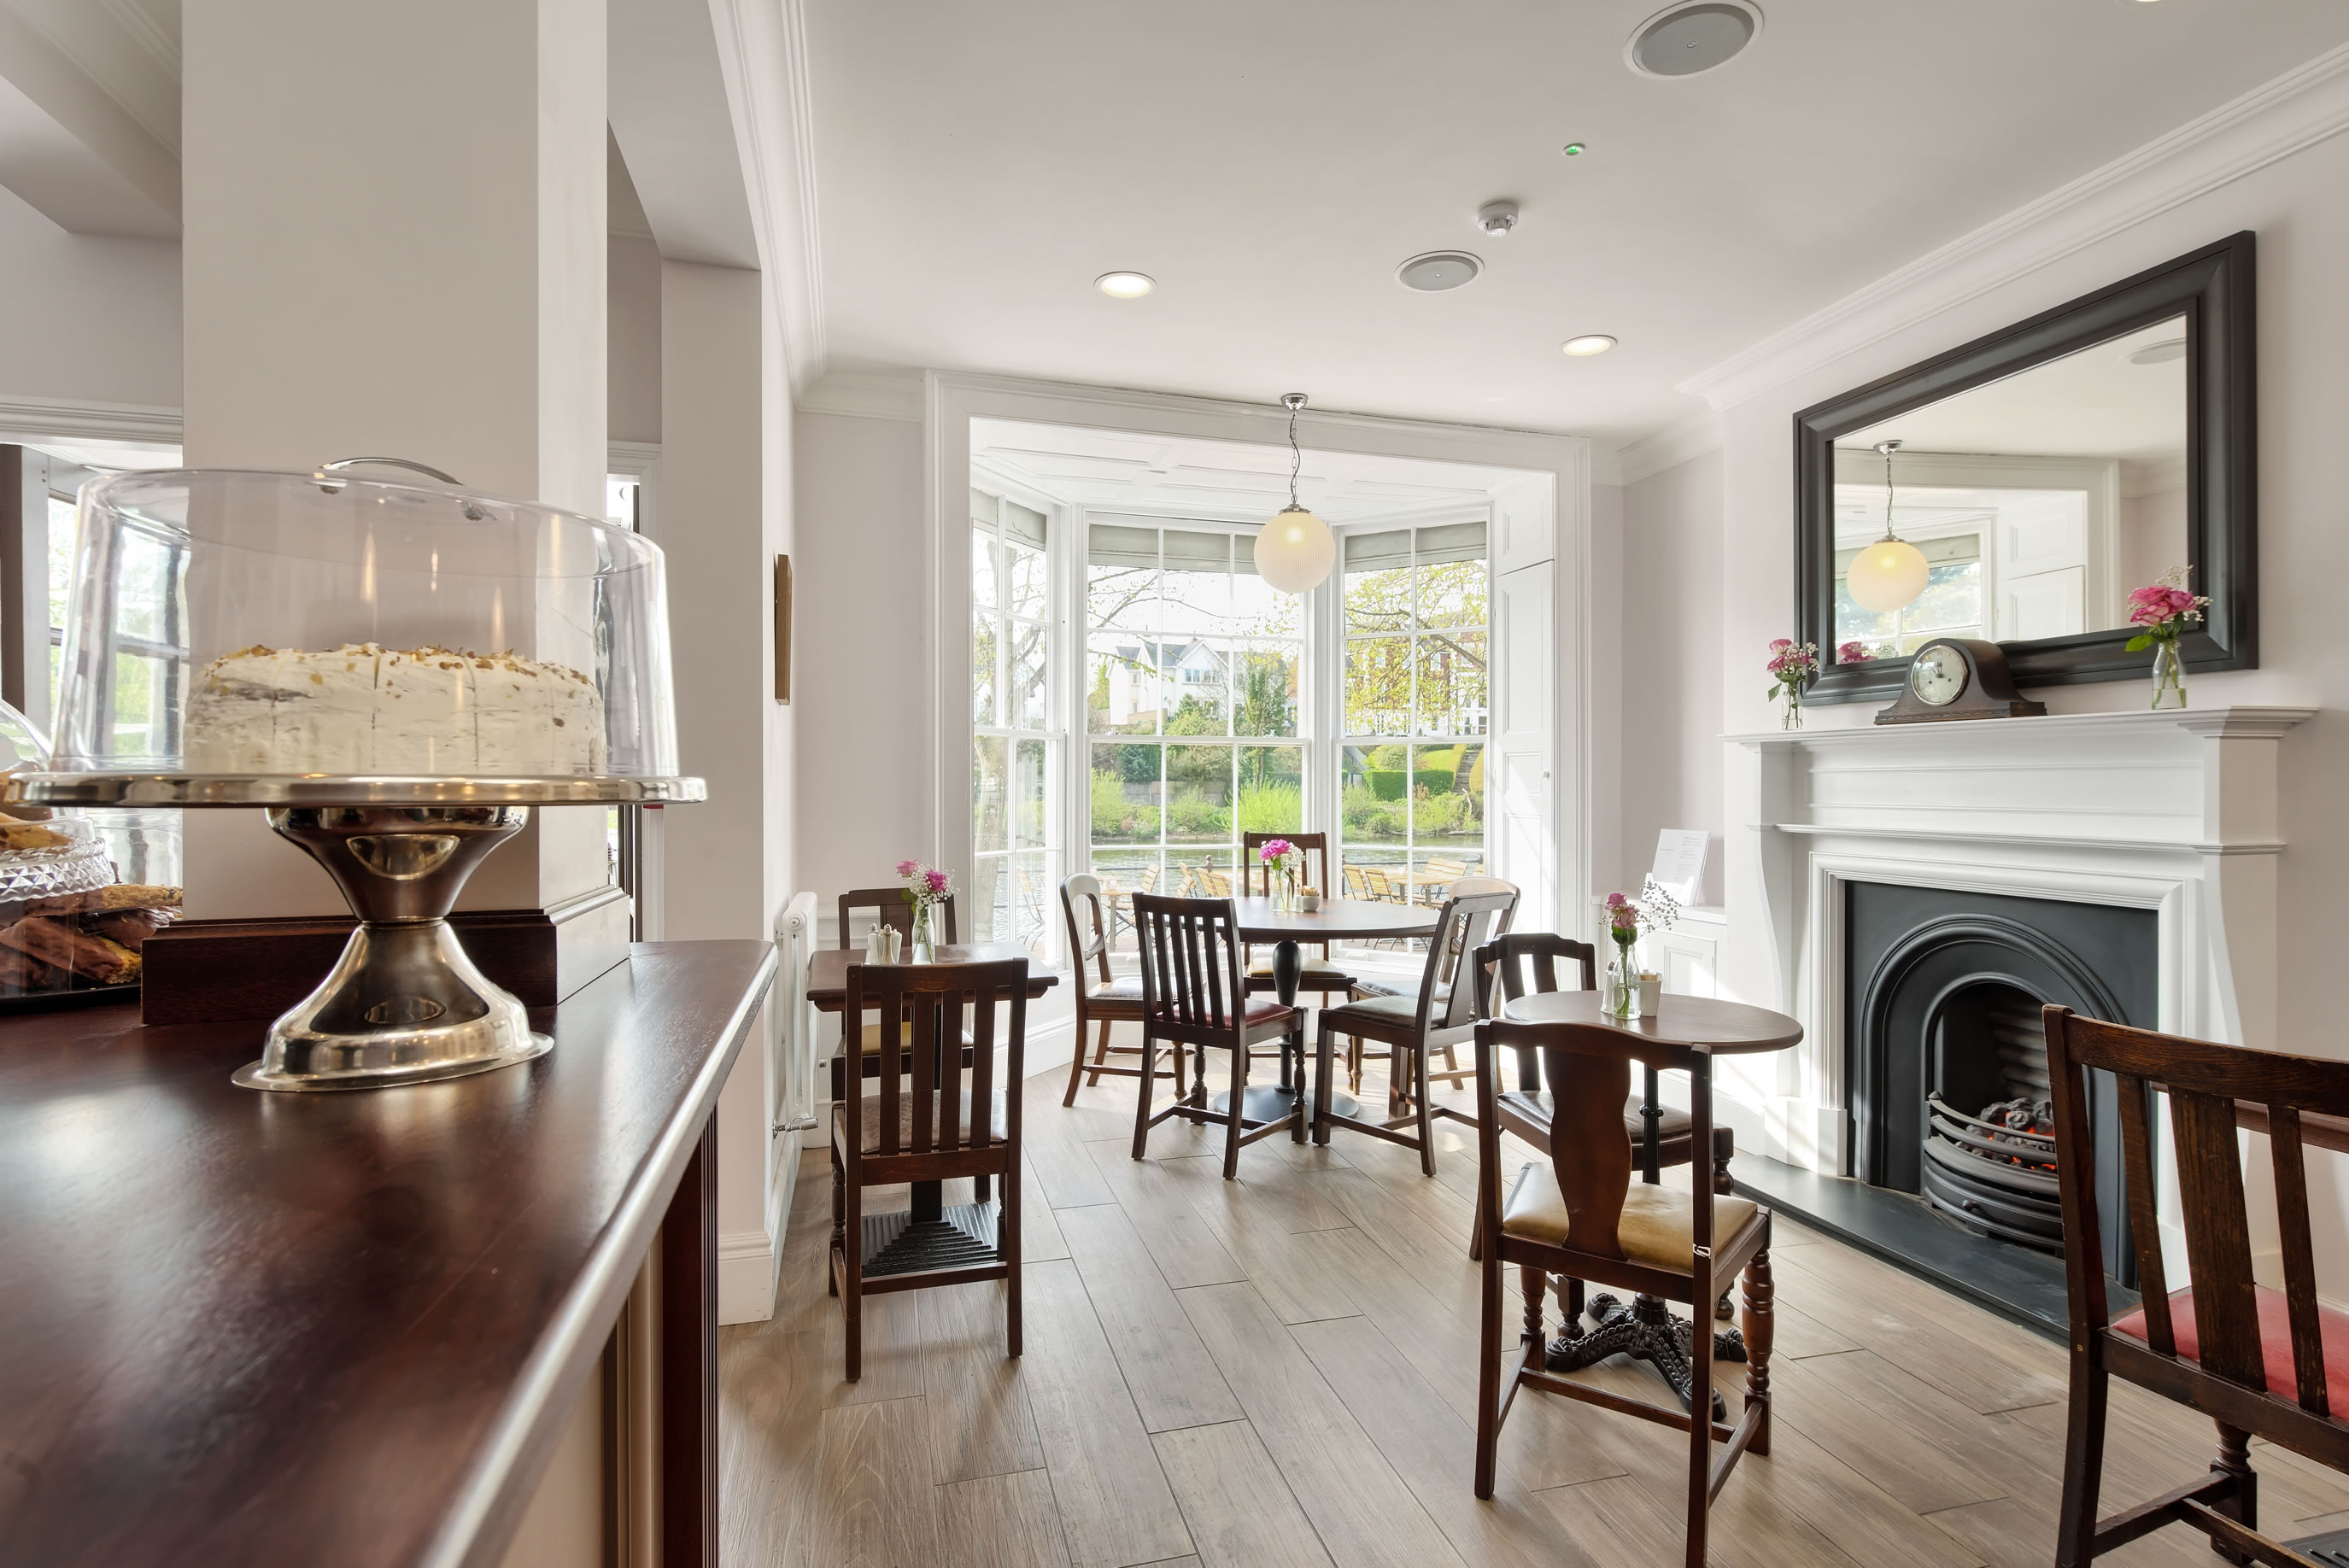 The Moorings. A project by James Roberts Interior Design Practice